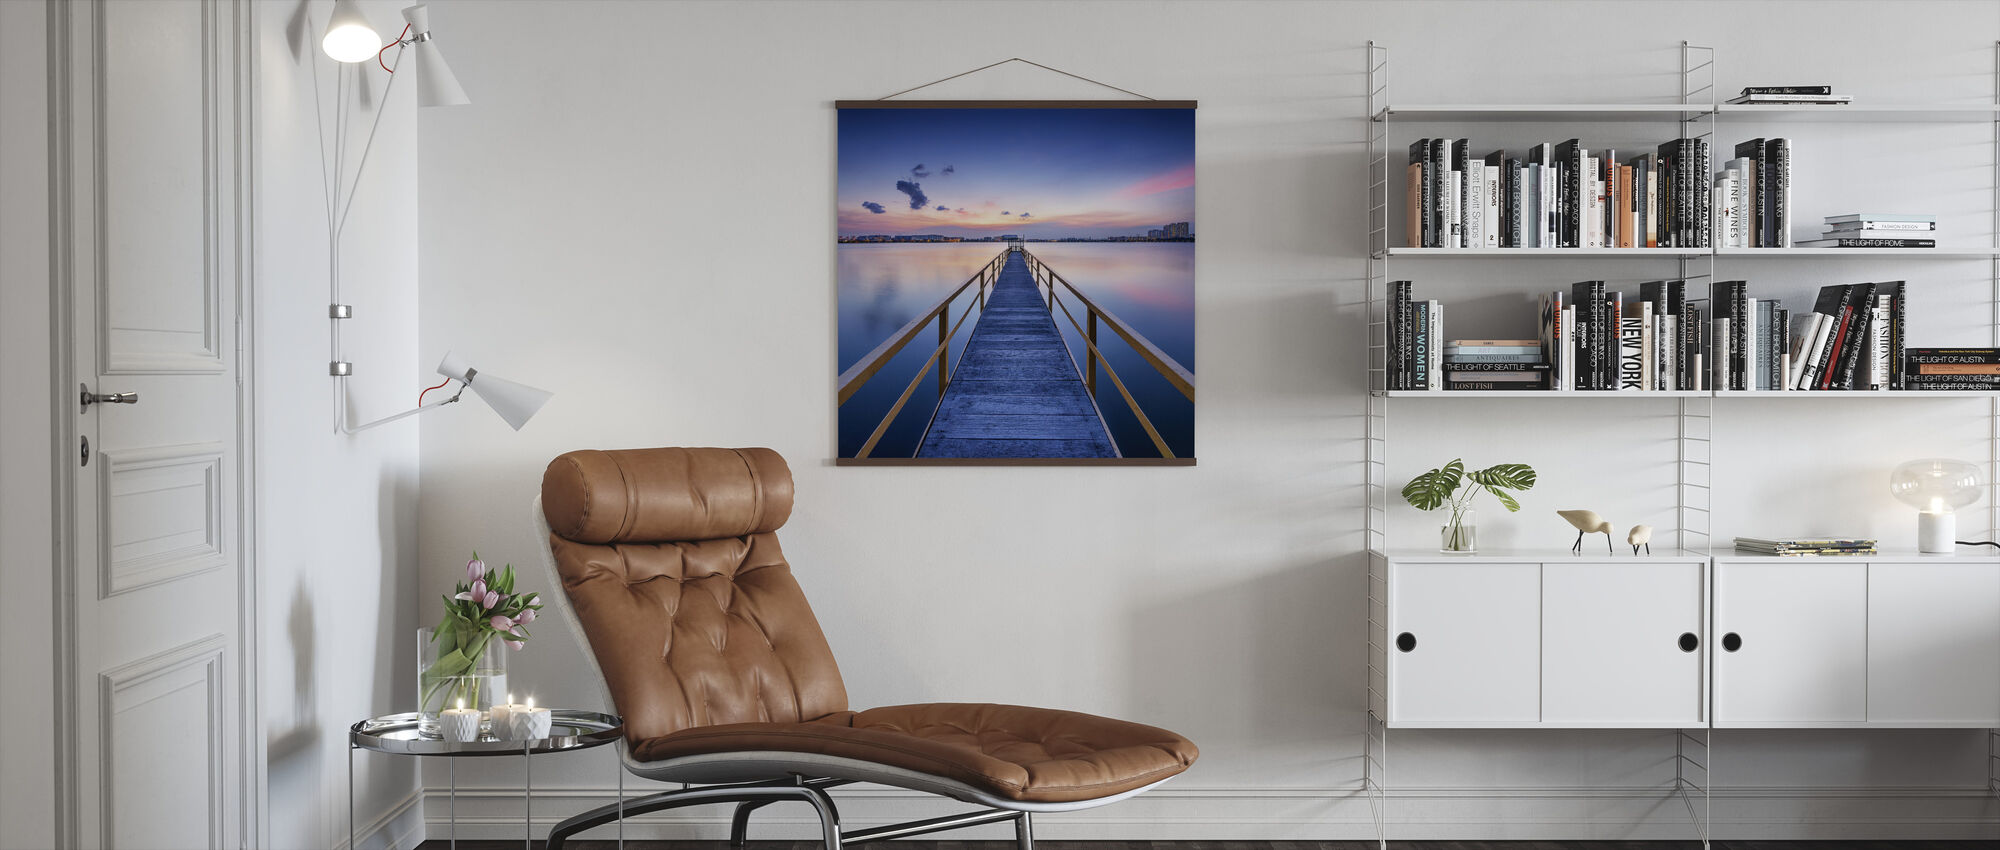 Rosy Sunset Pier - Poster - Living Room